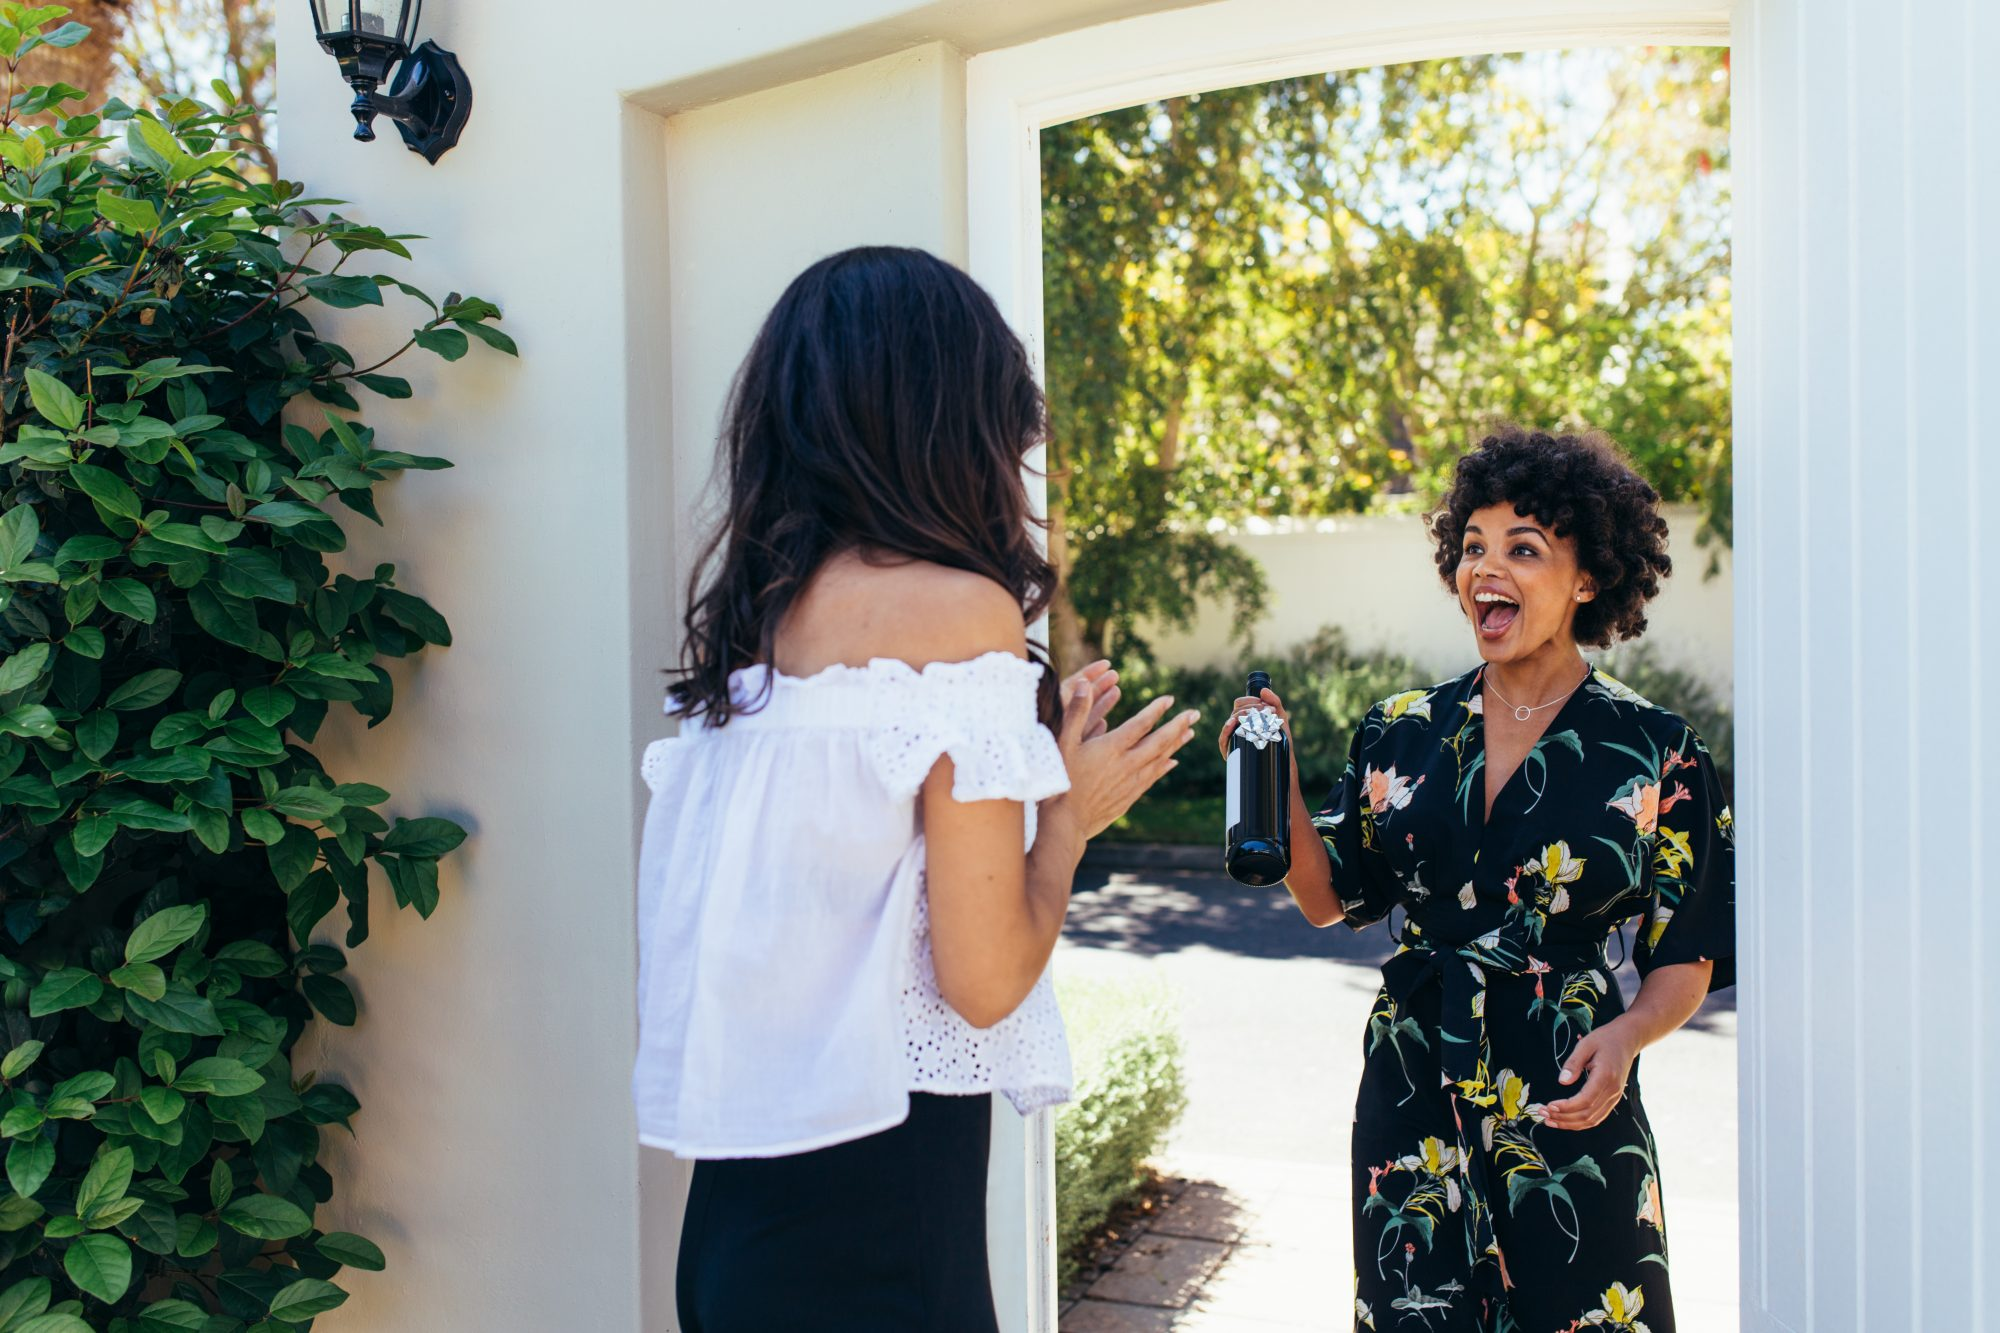 Excited woman with wine bottle for housewarming party